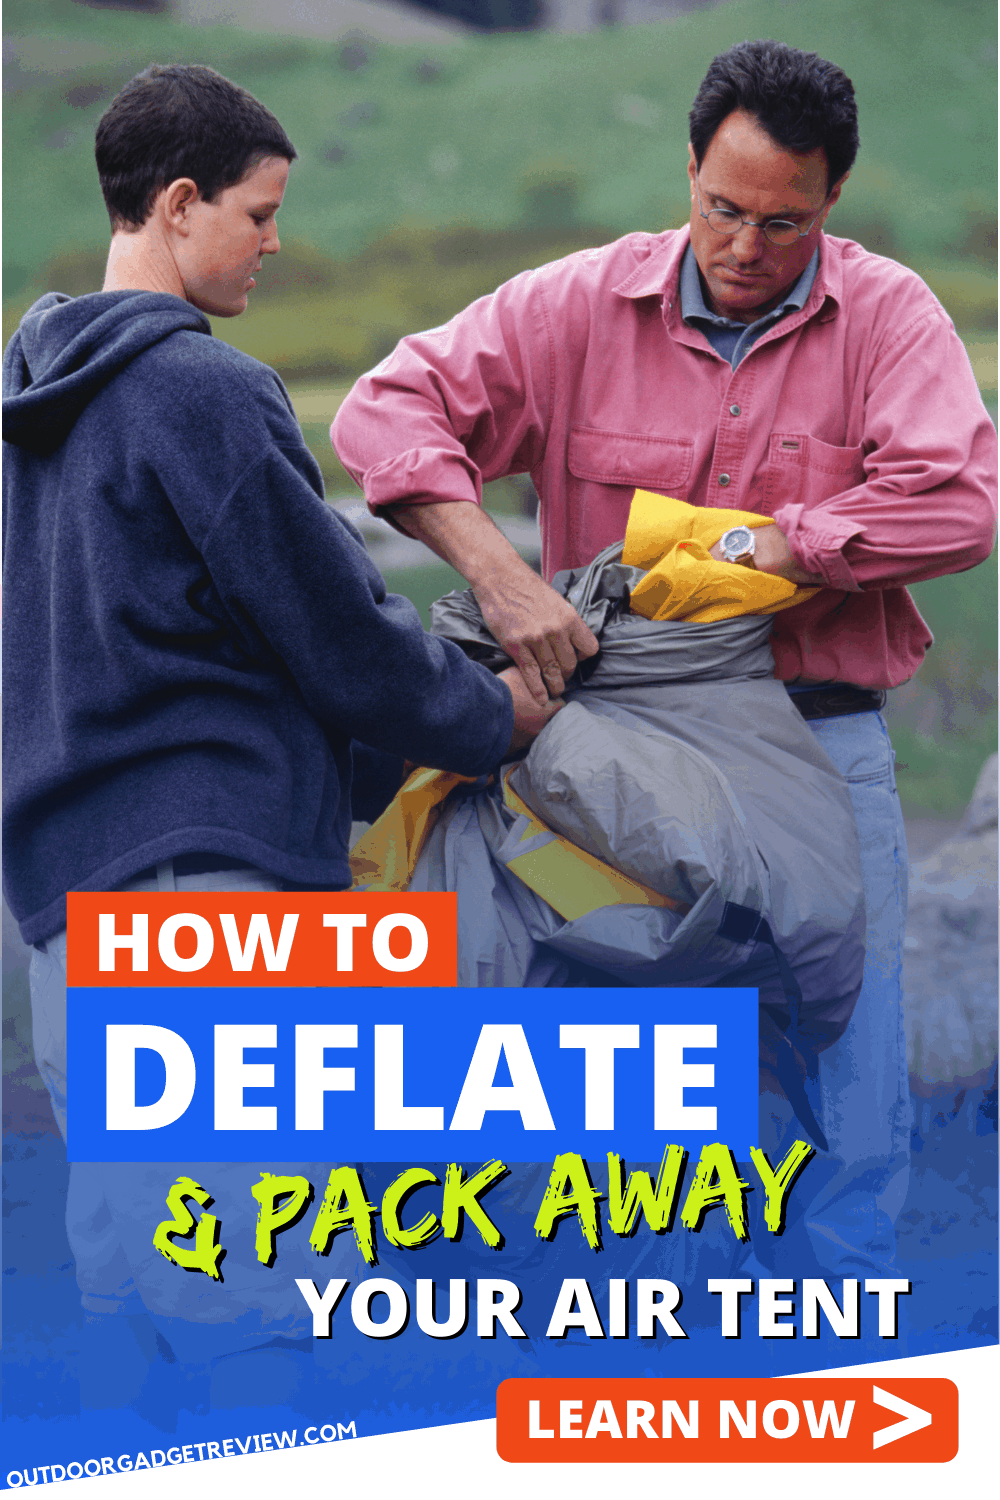 How to Deflate and Pack Away an Inflatable Tent (1)